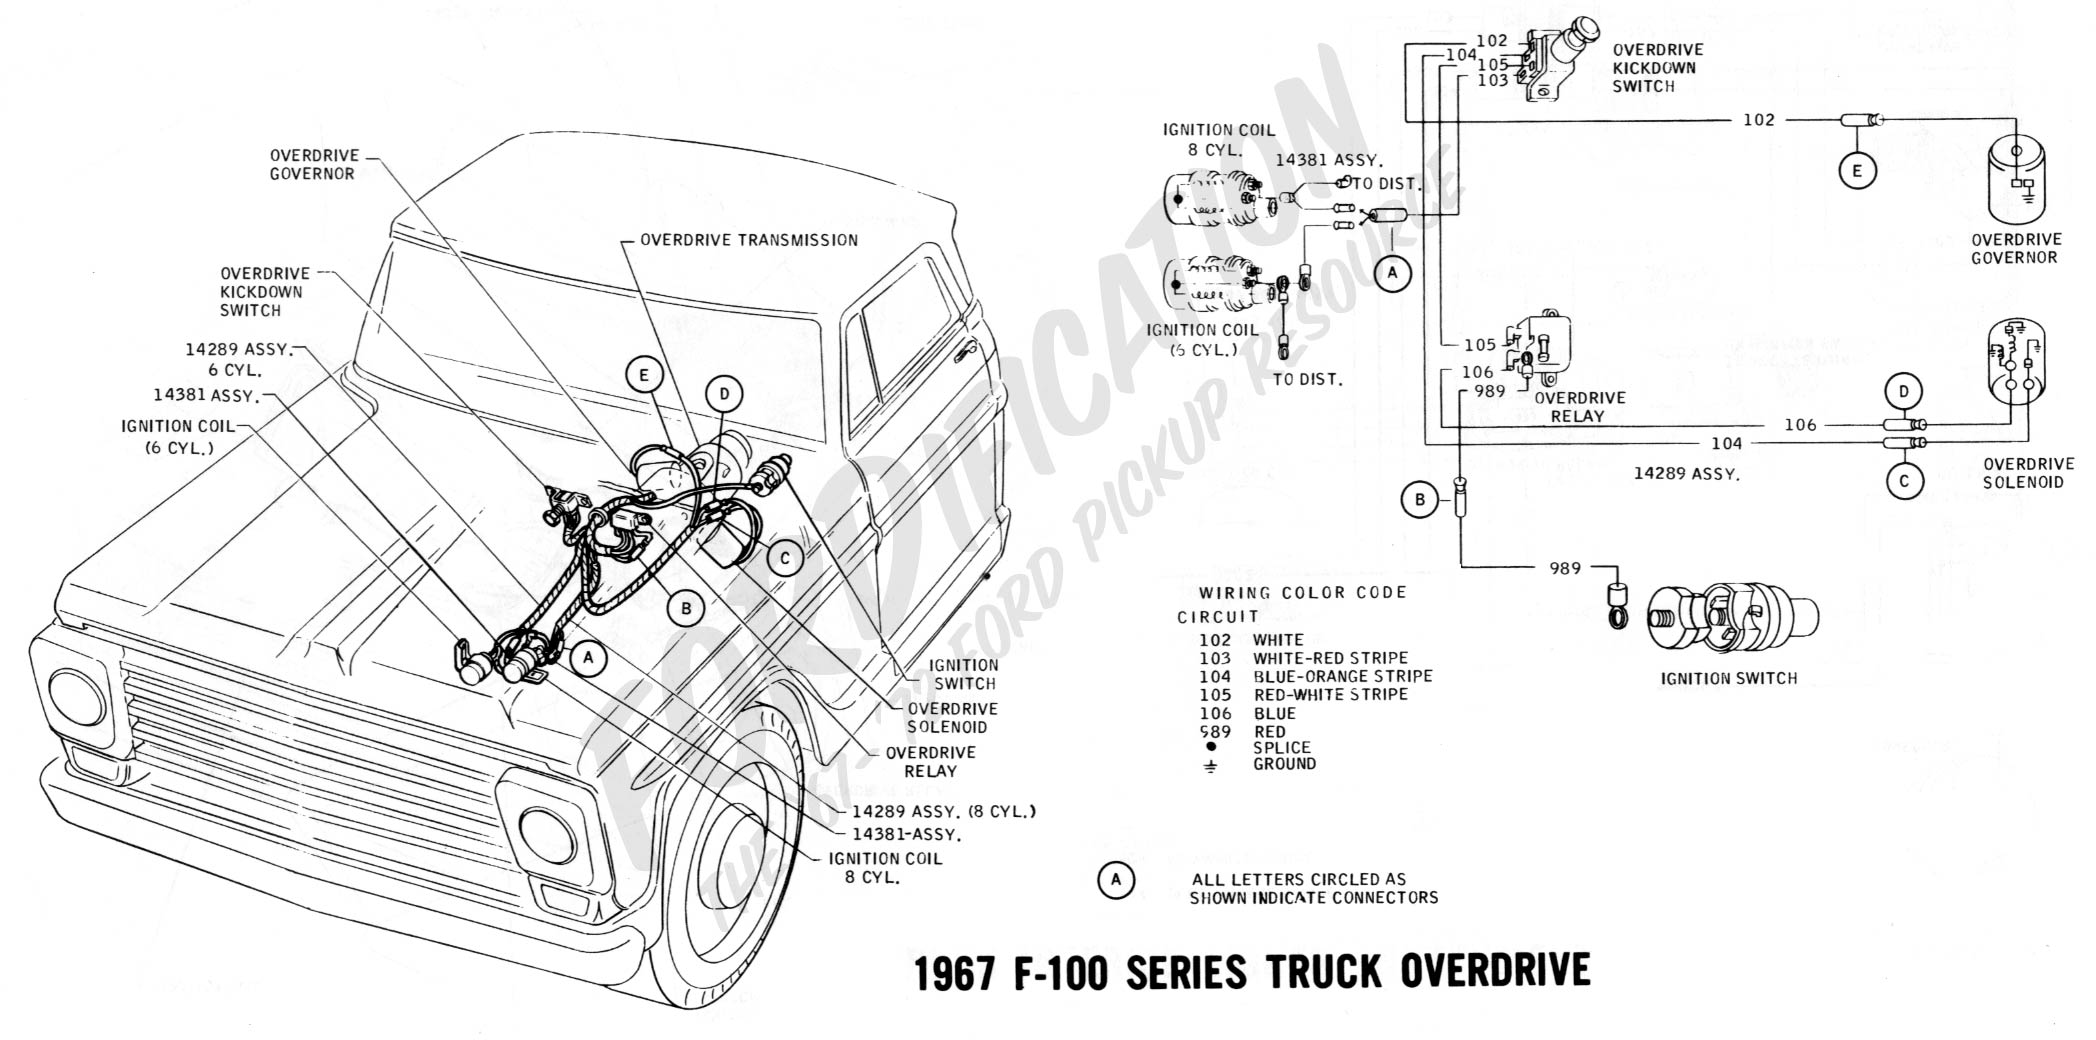 wiring 1967overdrive2 ford truck technical drawings and schematics section h wiring 1969 ford f100 wiring diagram at creativeand.co